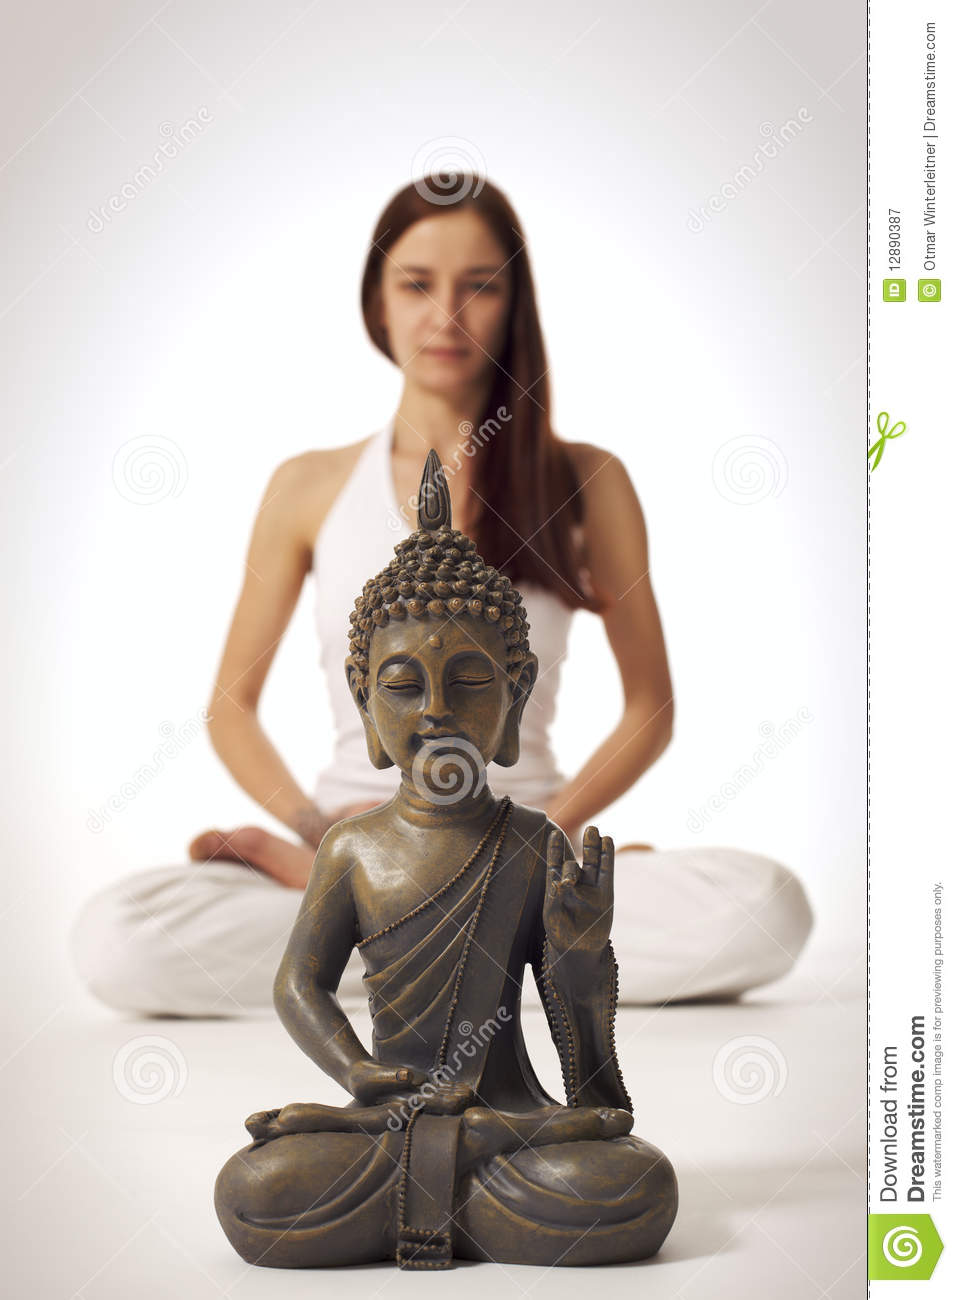 keyes buddhist single women Are you looking to meet a buddhist single man or woman in germany if you are, become a member of our 'friendship' community opening an account with us is quick and simple just create your.